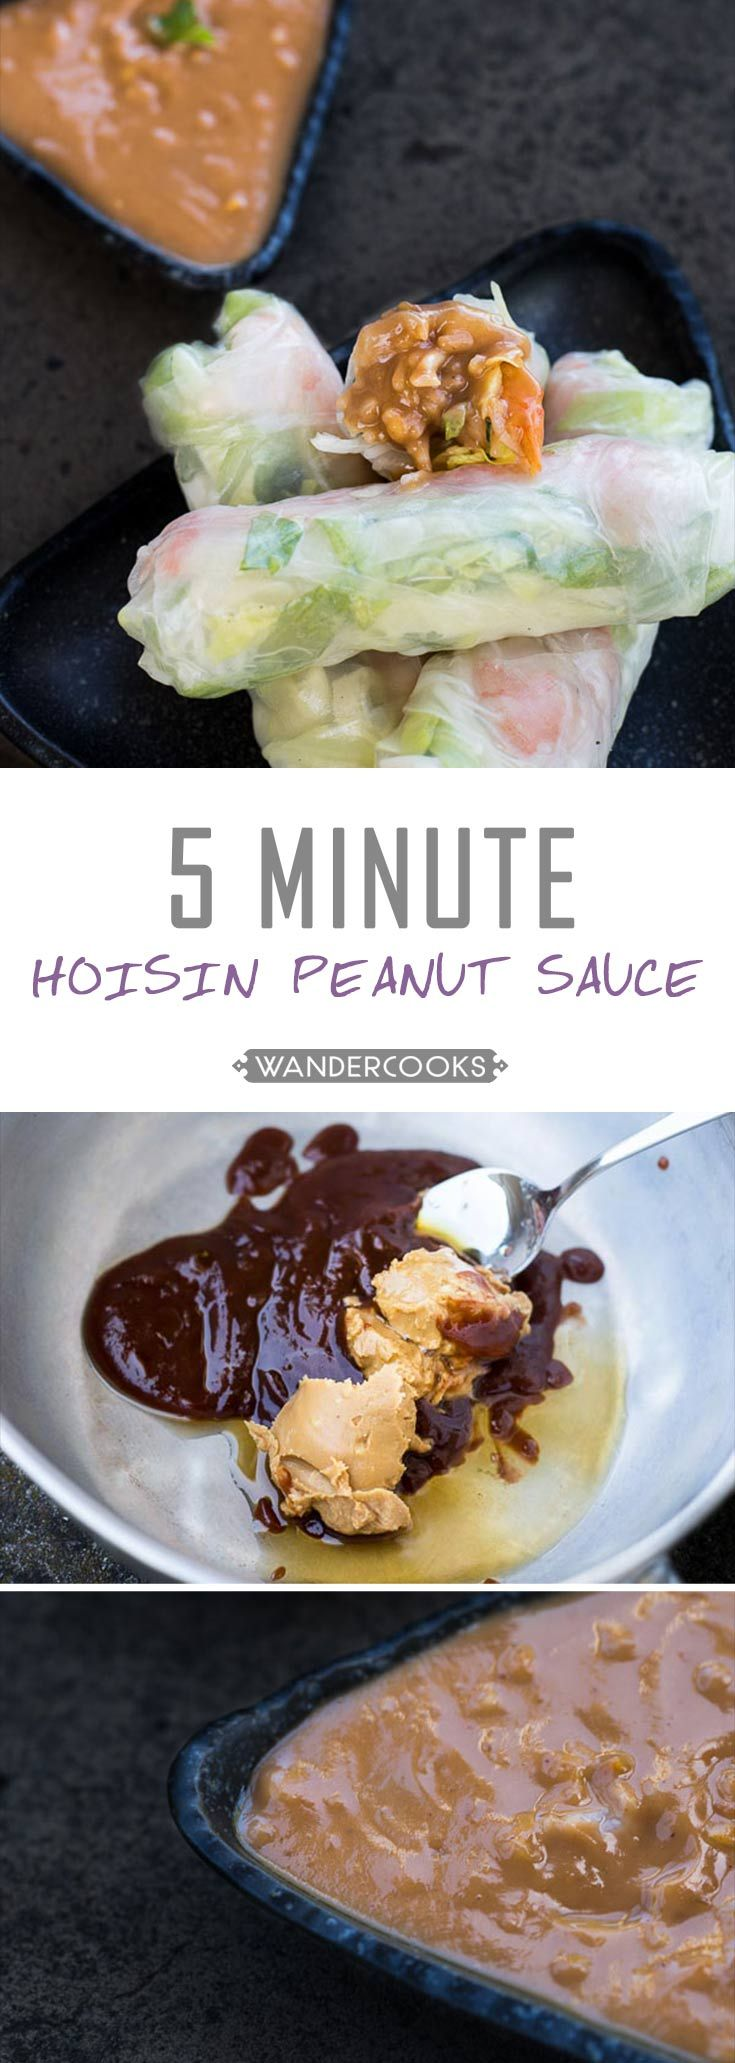 Vietnamese Peanut Hoisin Dipping Sauce - A 5 minute side dish guaranteed to make your cold rolls HAPPY. Vegetarian. | wandercooks.com